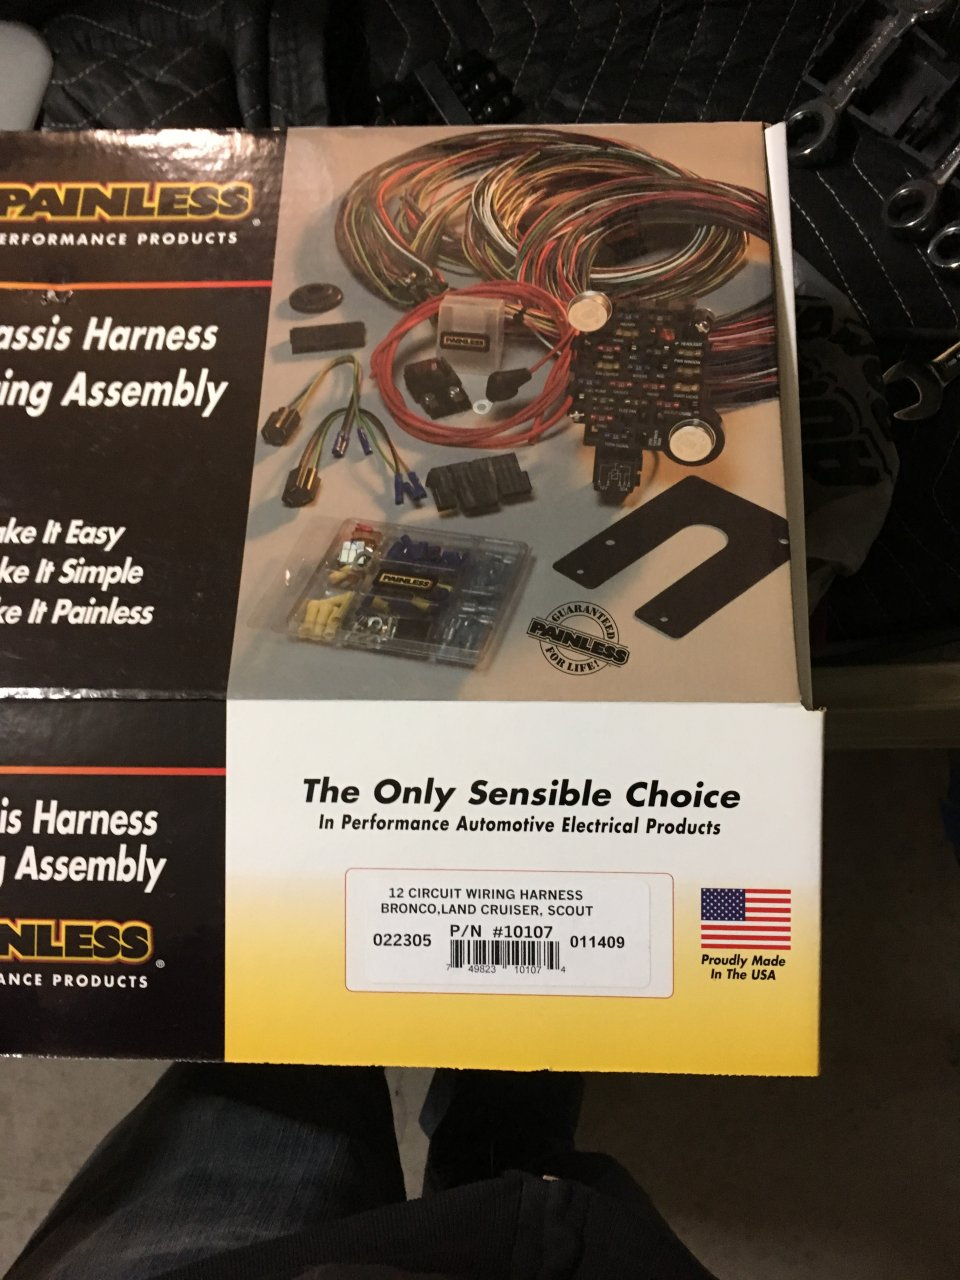 For Sale Painless 10107 Wiring Harness New In Box Ih8mud Forum